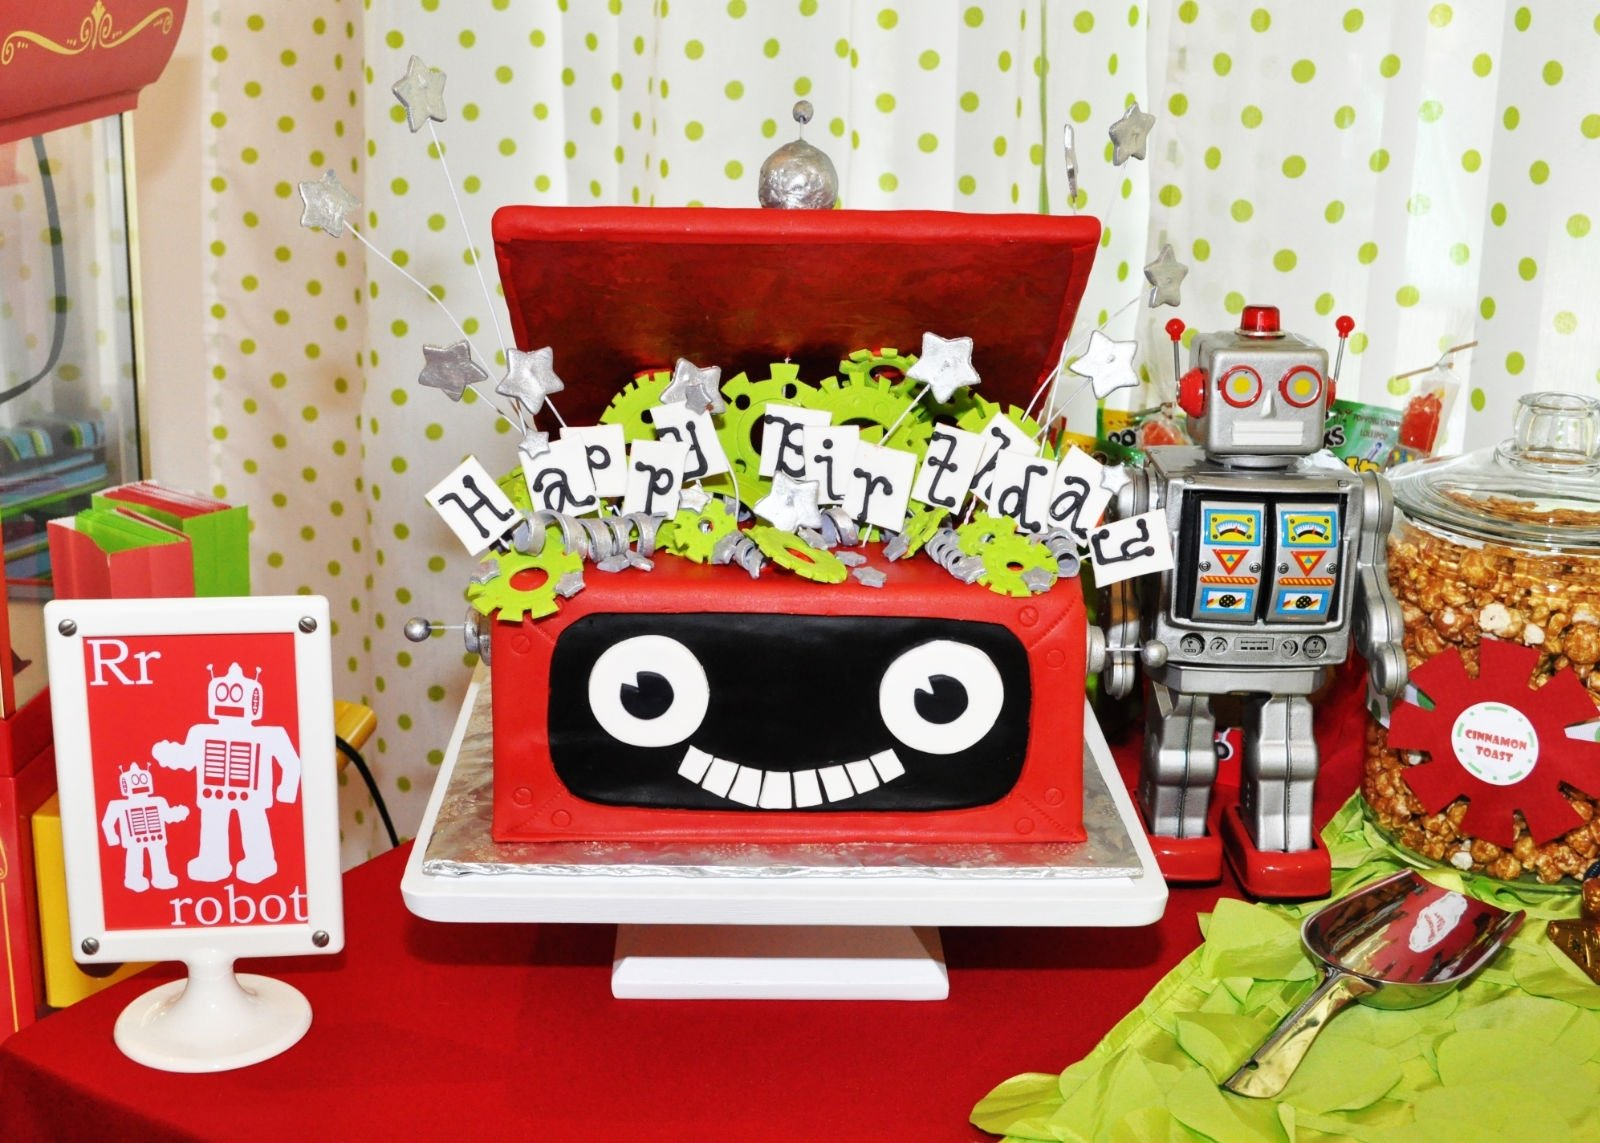 10 Attractive Birthday Party Ideas For Boys Age 9 50 awesome boys birthday party ideas i heart naptime 55 2020